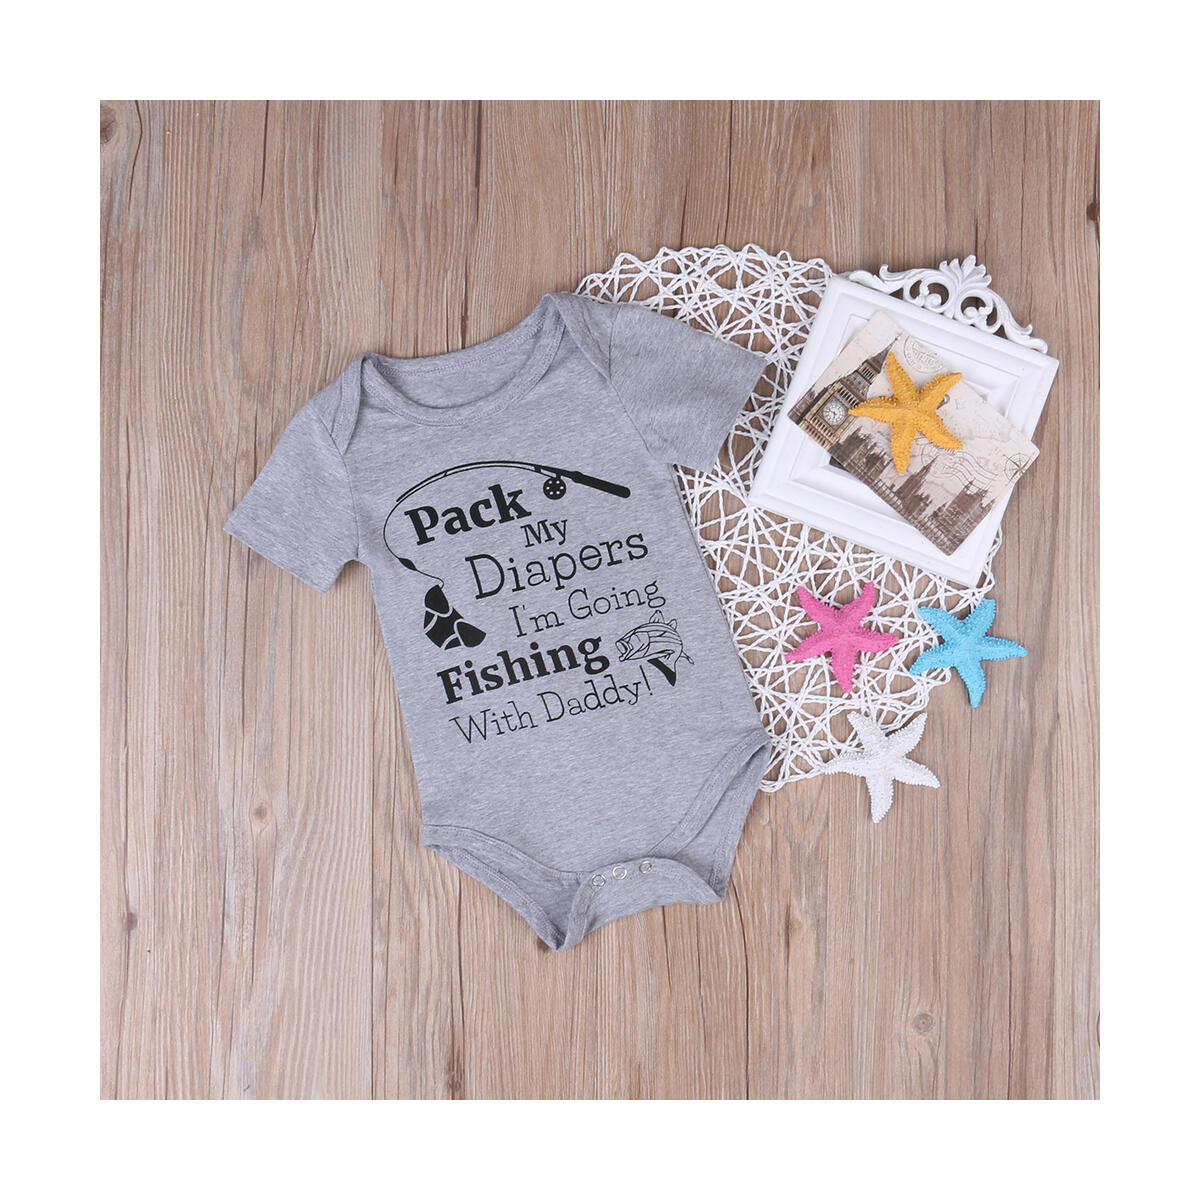 Newborn Infant Baby Boys Girls Short Sleeve Fishing with Daddy Bodysuit Romper Outfits